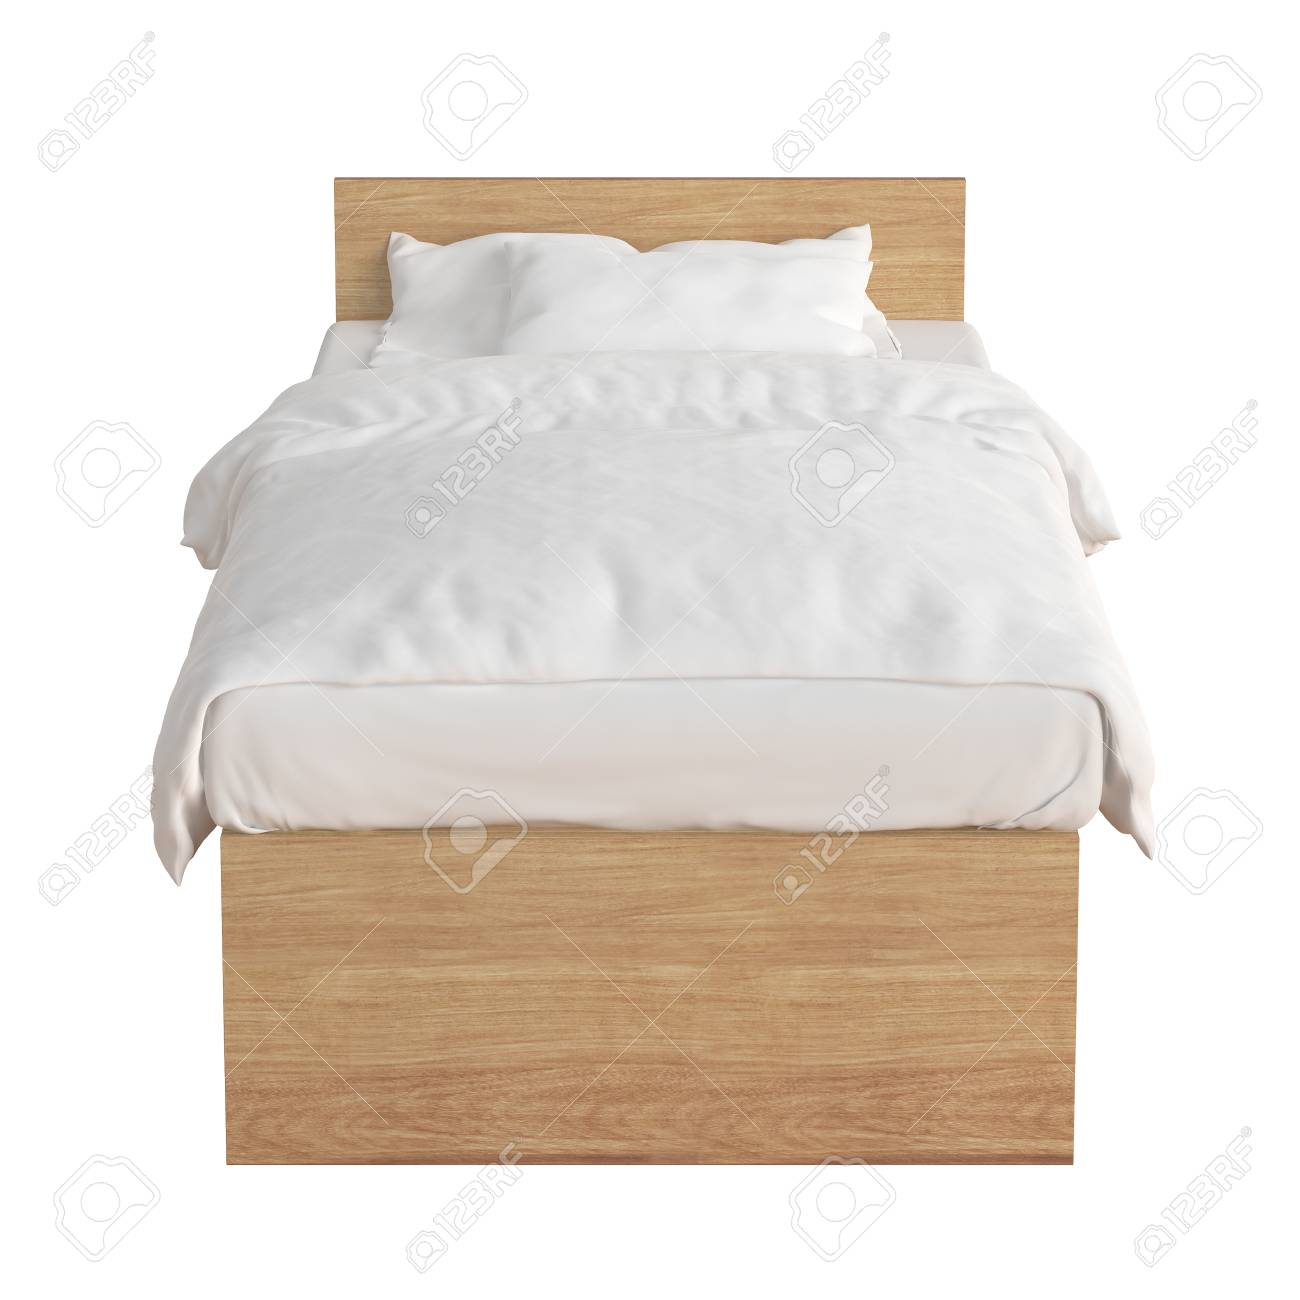 Wooden Twin Size Bed.Wooden Twin Size Single Bed With White Linen Isolated On White